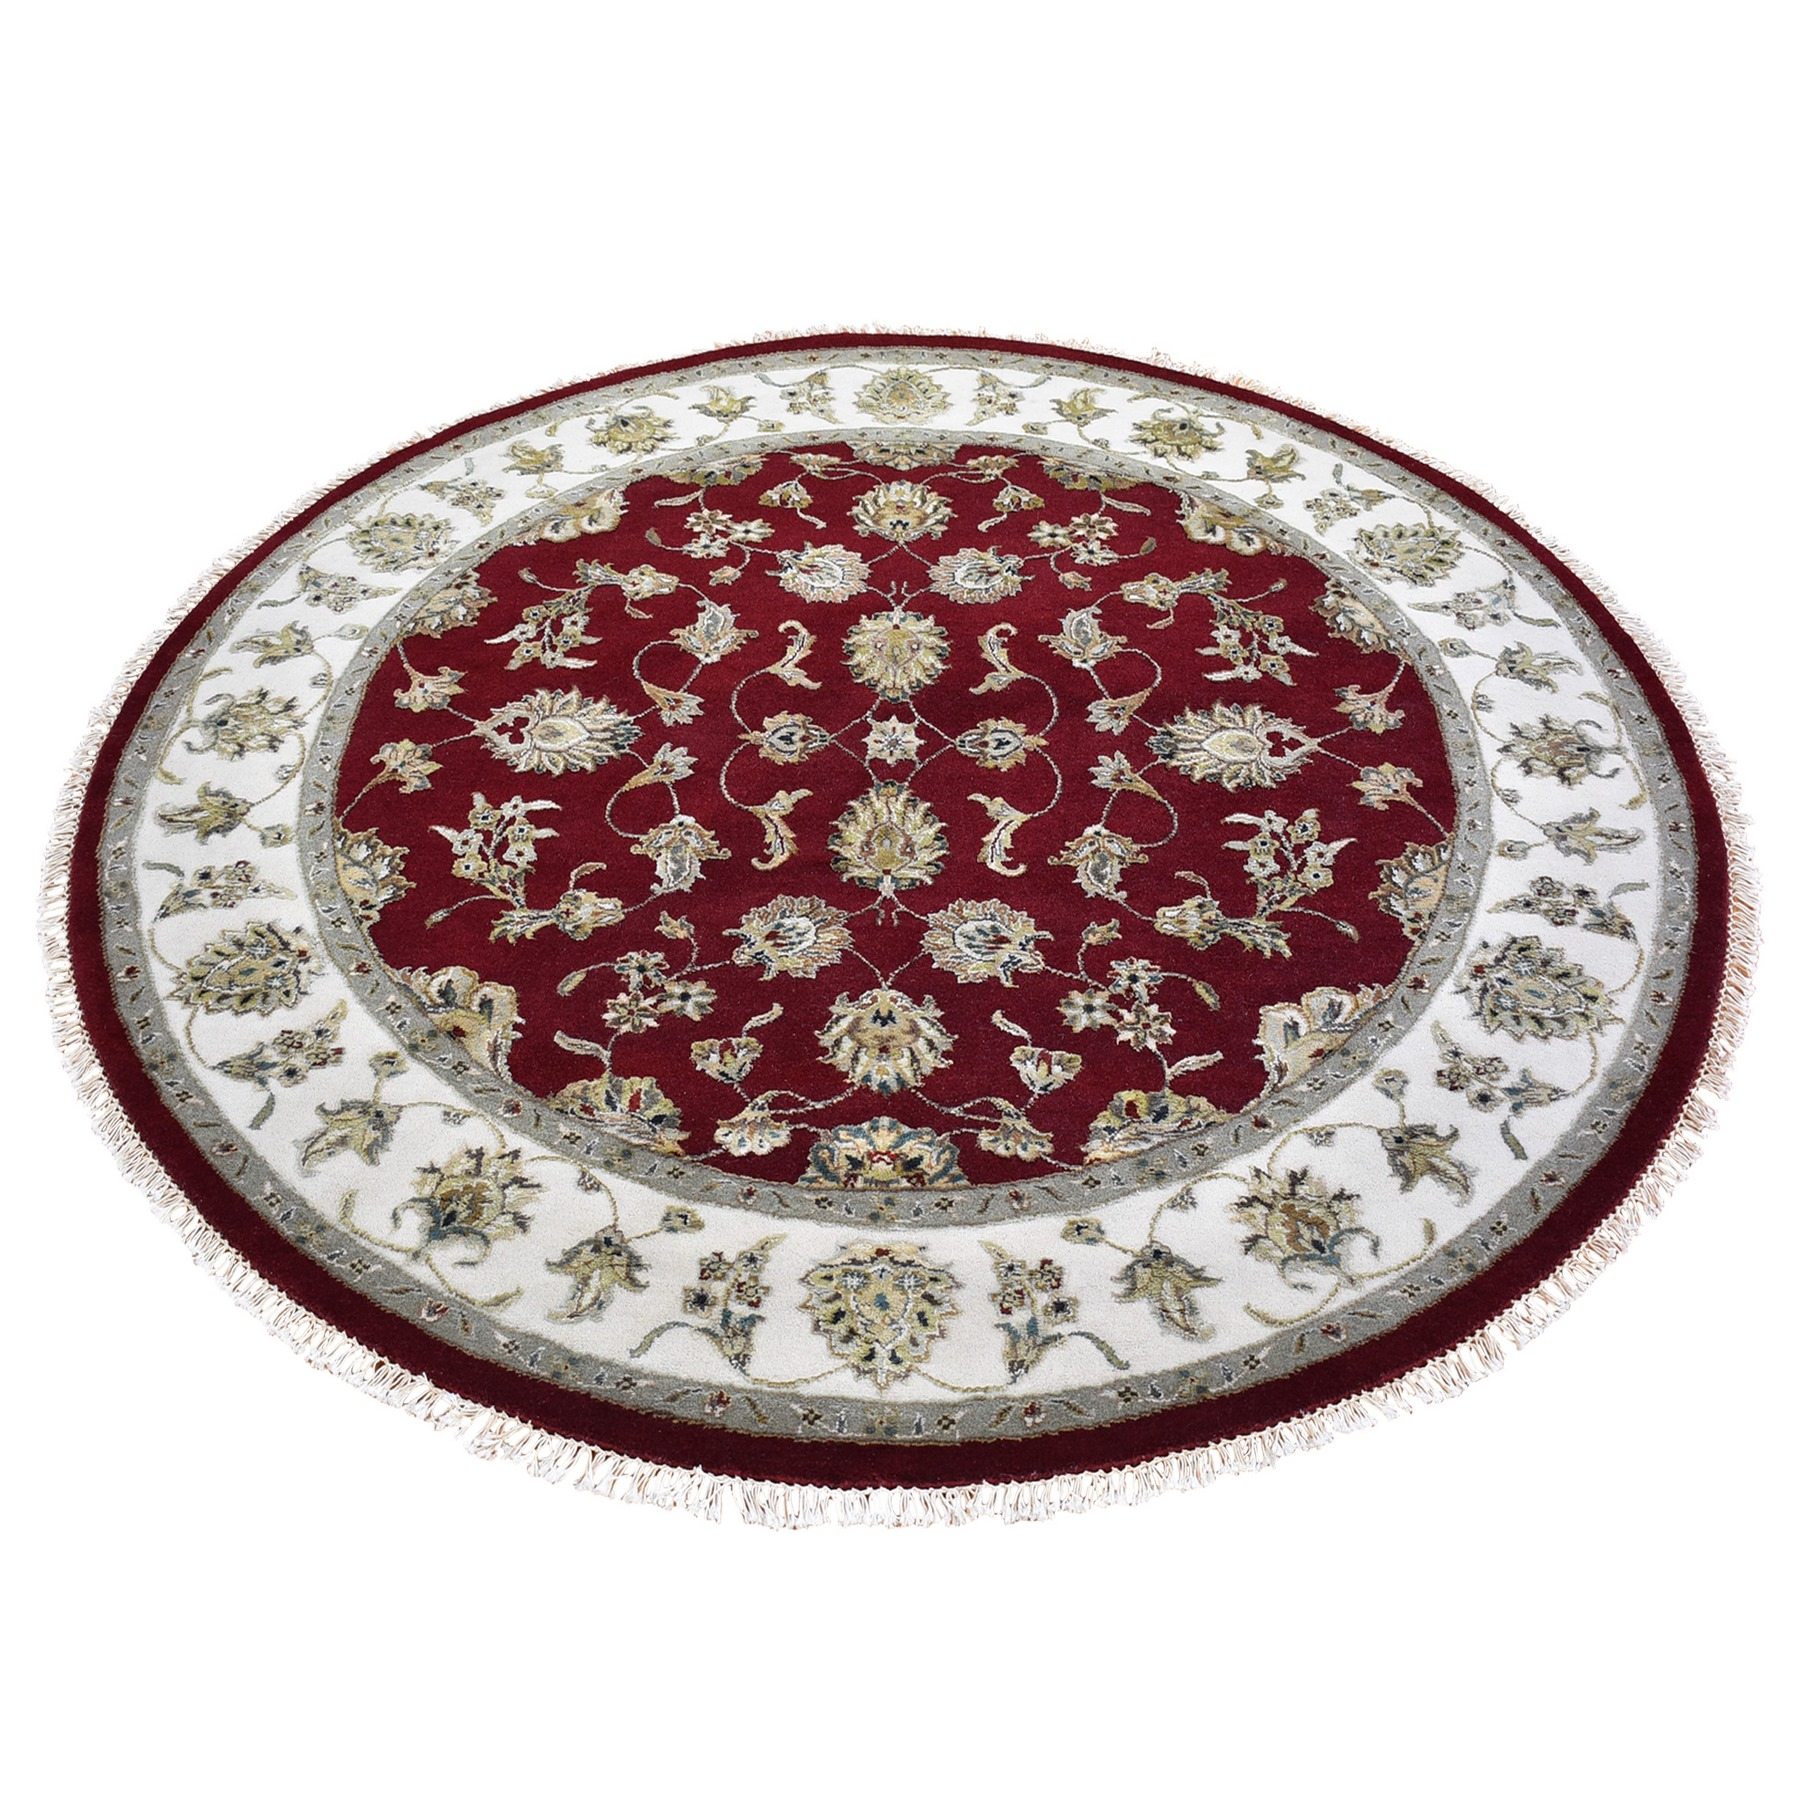 Pahlavi Collection Hand Knotted Red Rug No: 1133480